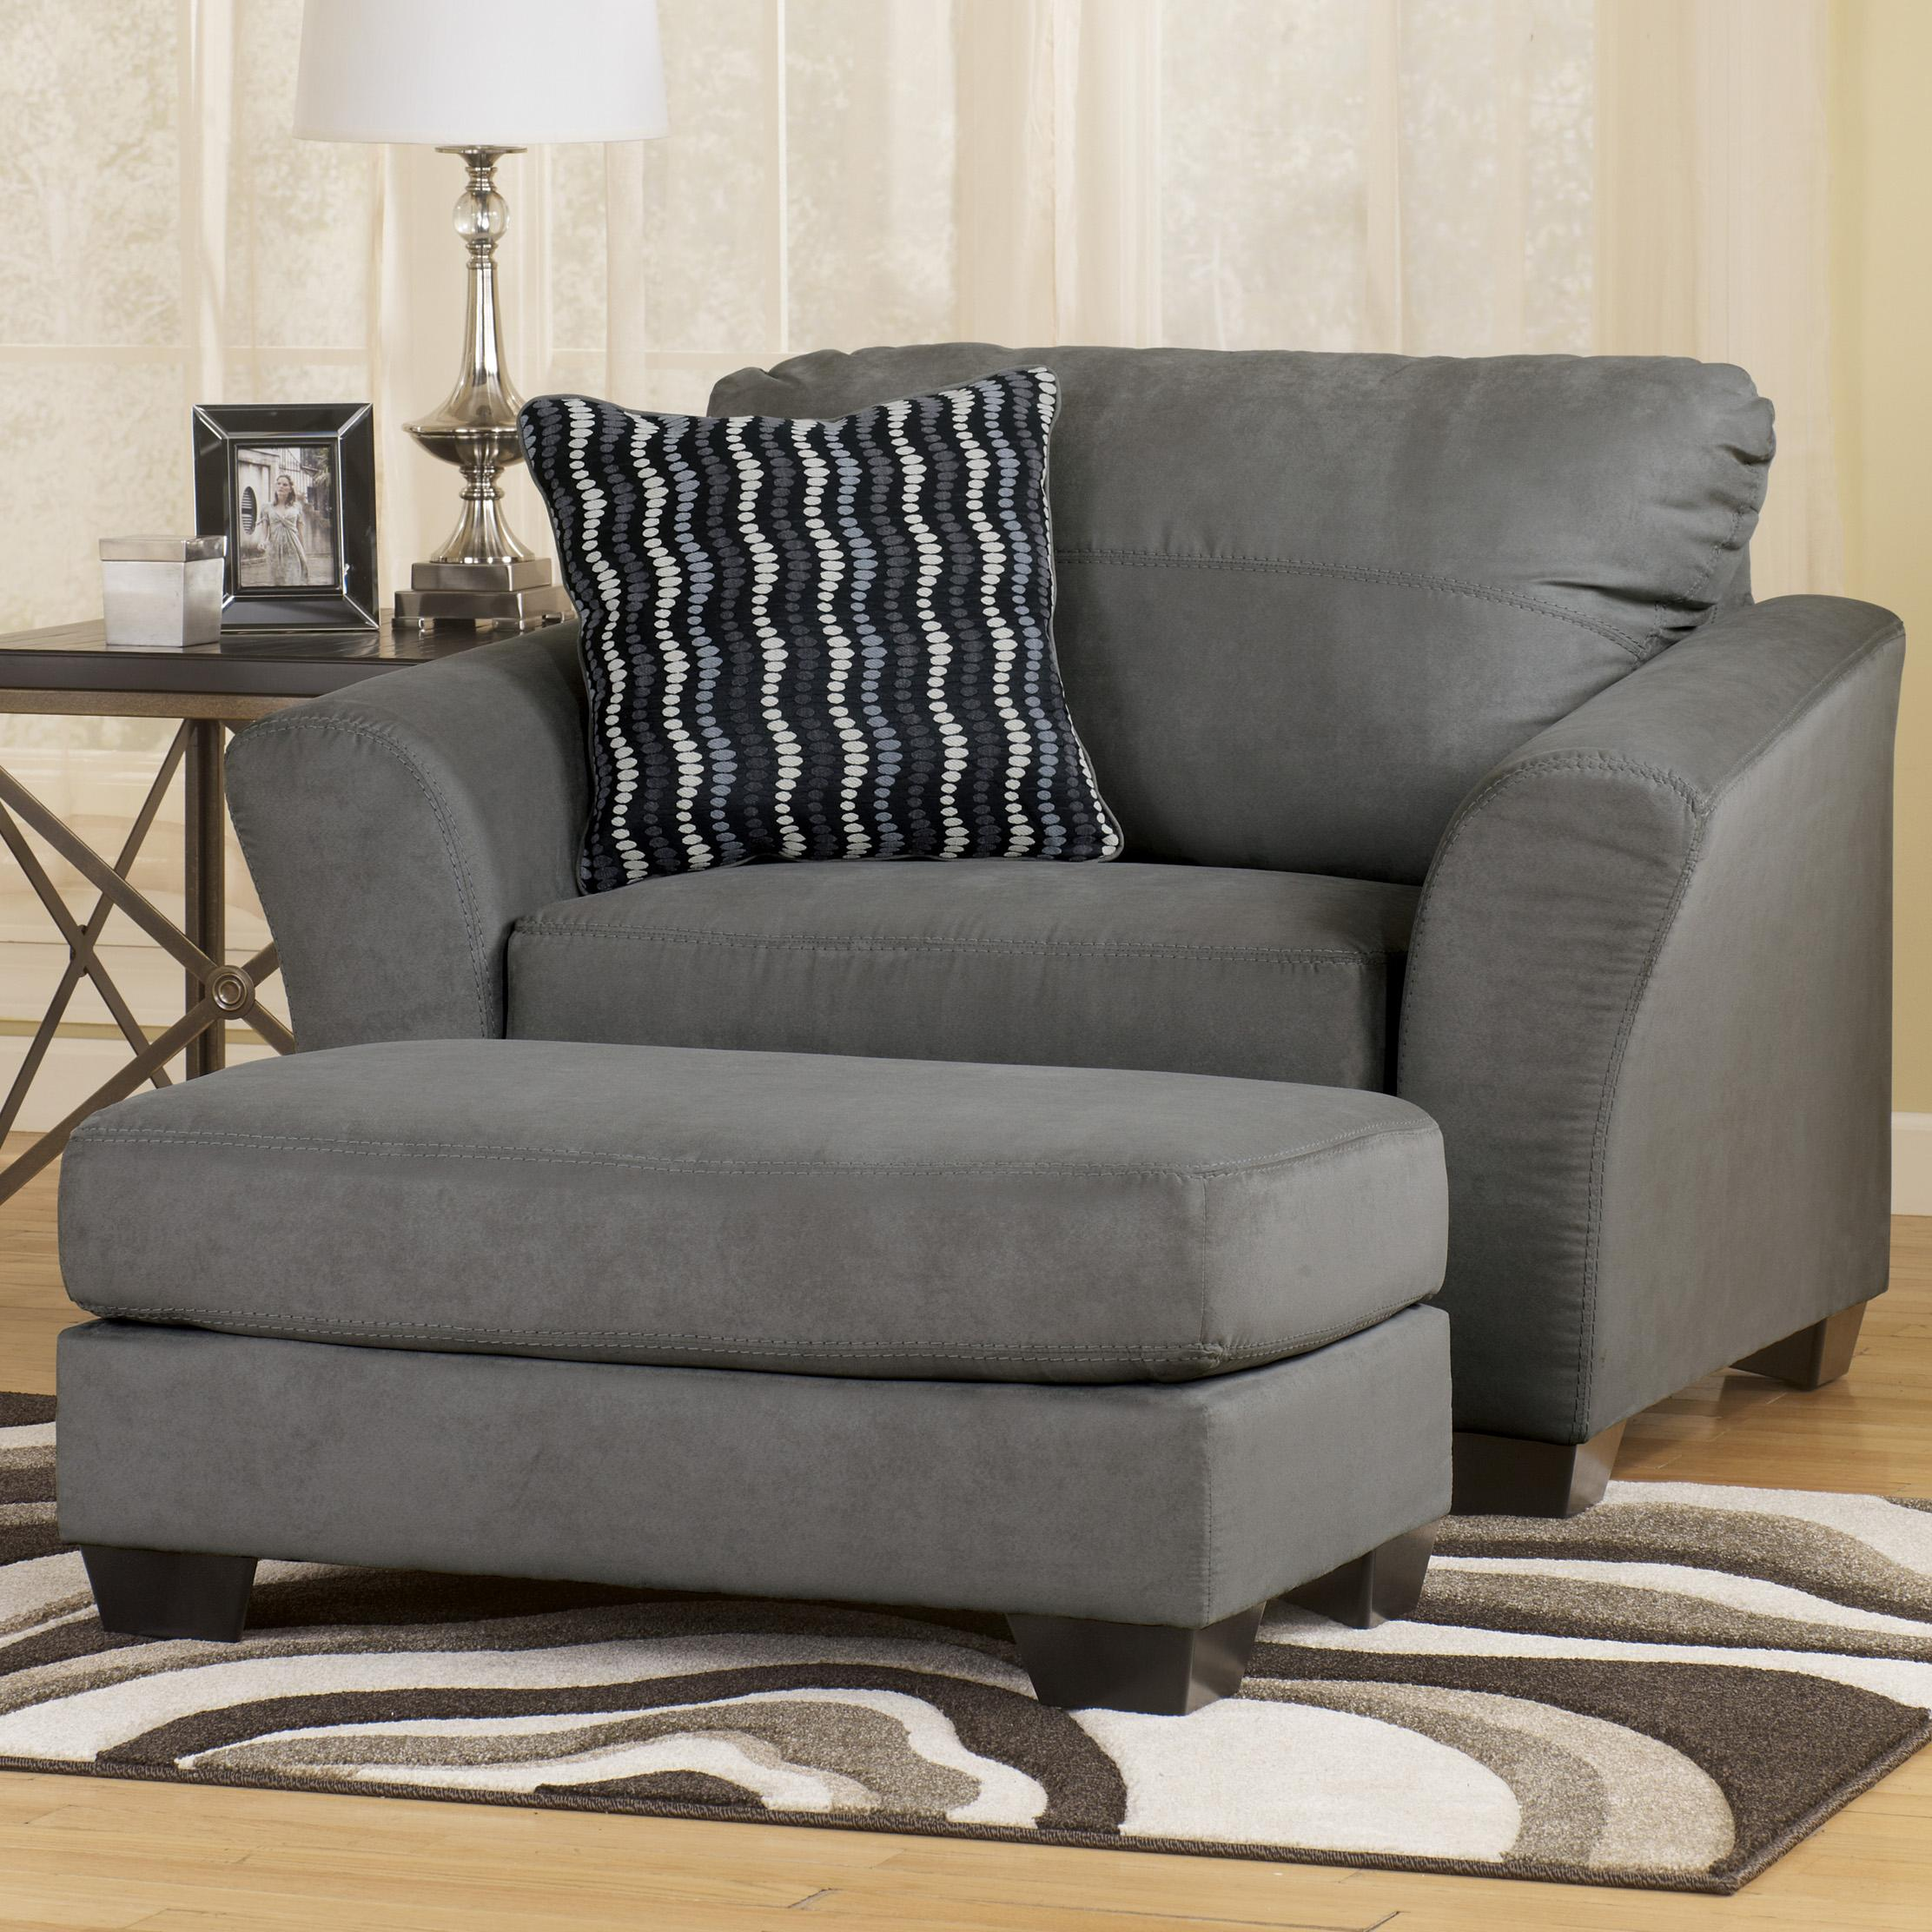 wide sofa chair wide arm 3 seat sofa hivemodern thesofa. Black Bedroom Furniture Sets. Home Design Ideas